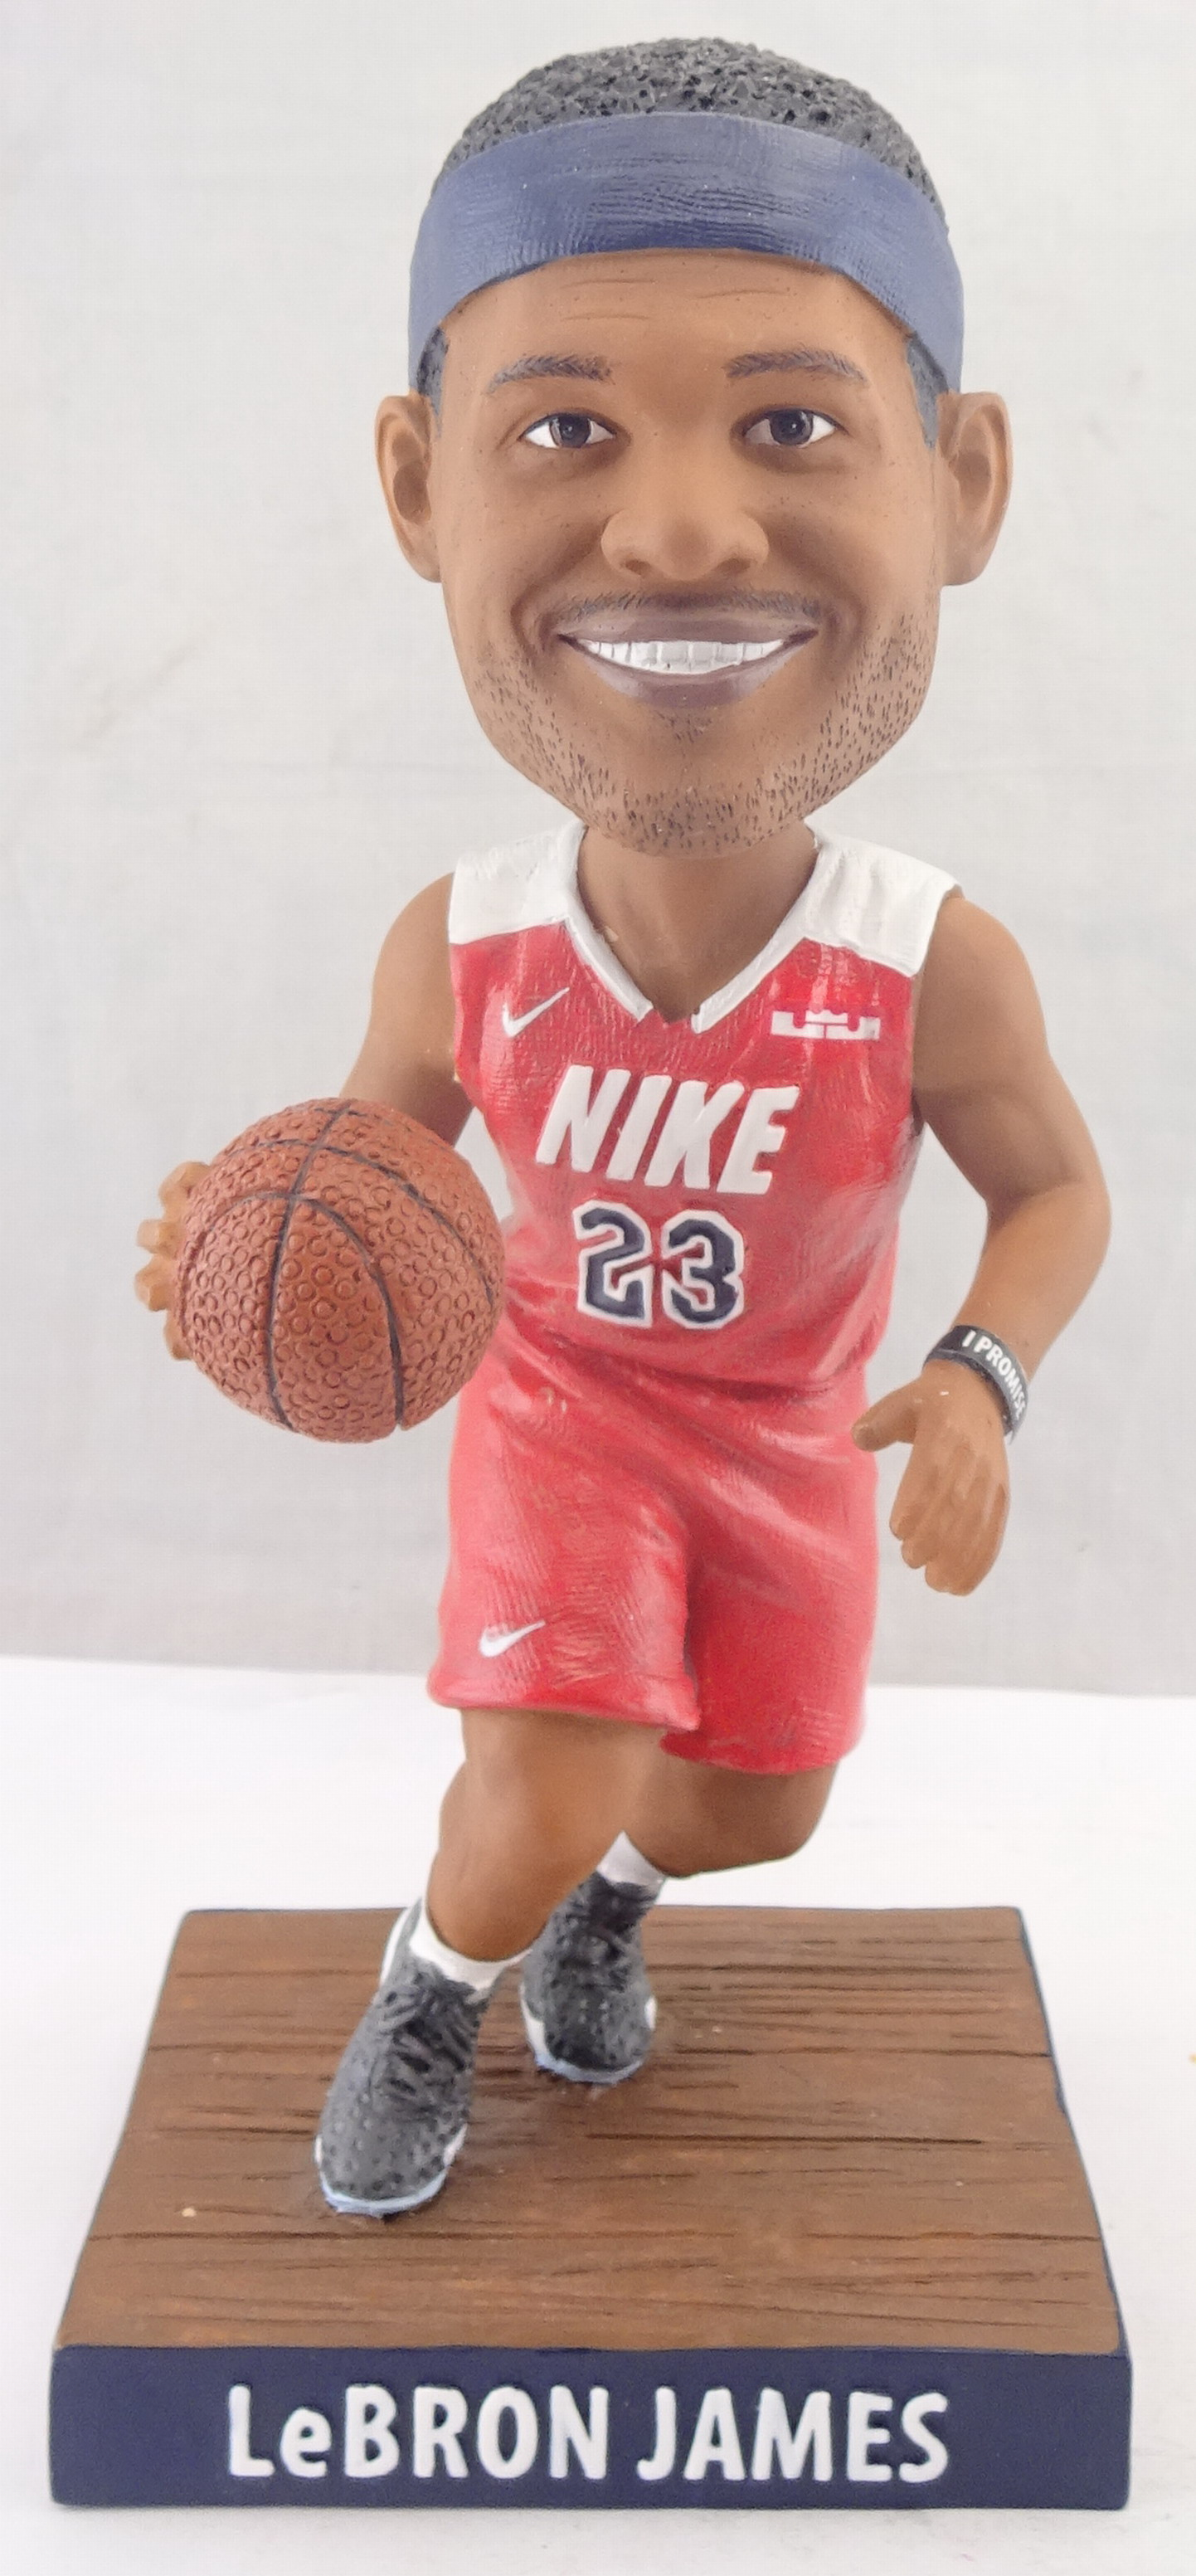 Duquesne University - LeBron James 113350, 7in Bobblehead (2).jpg